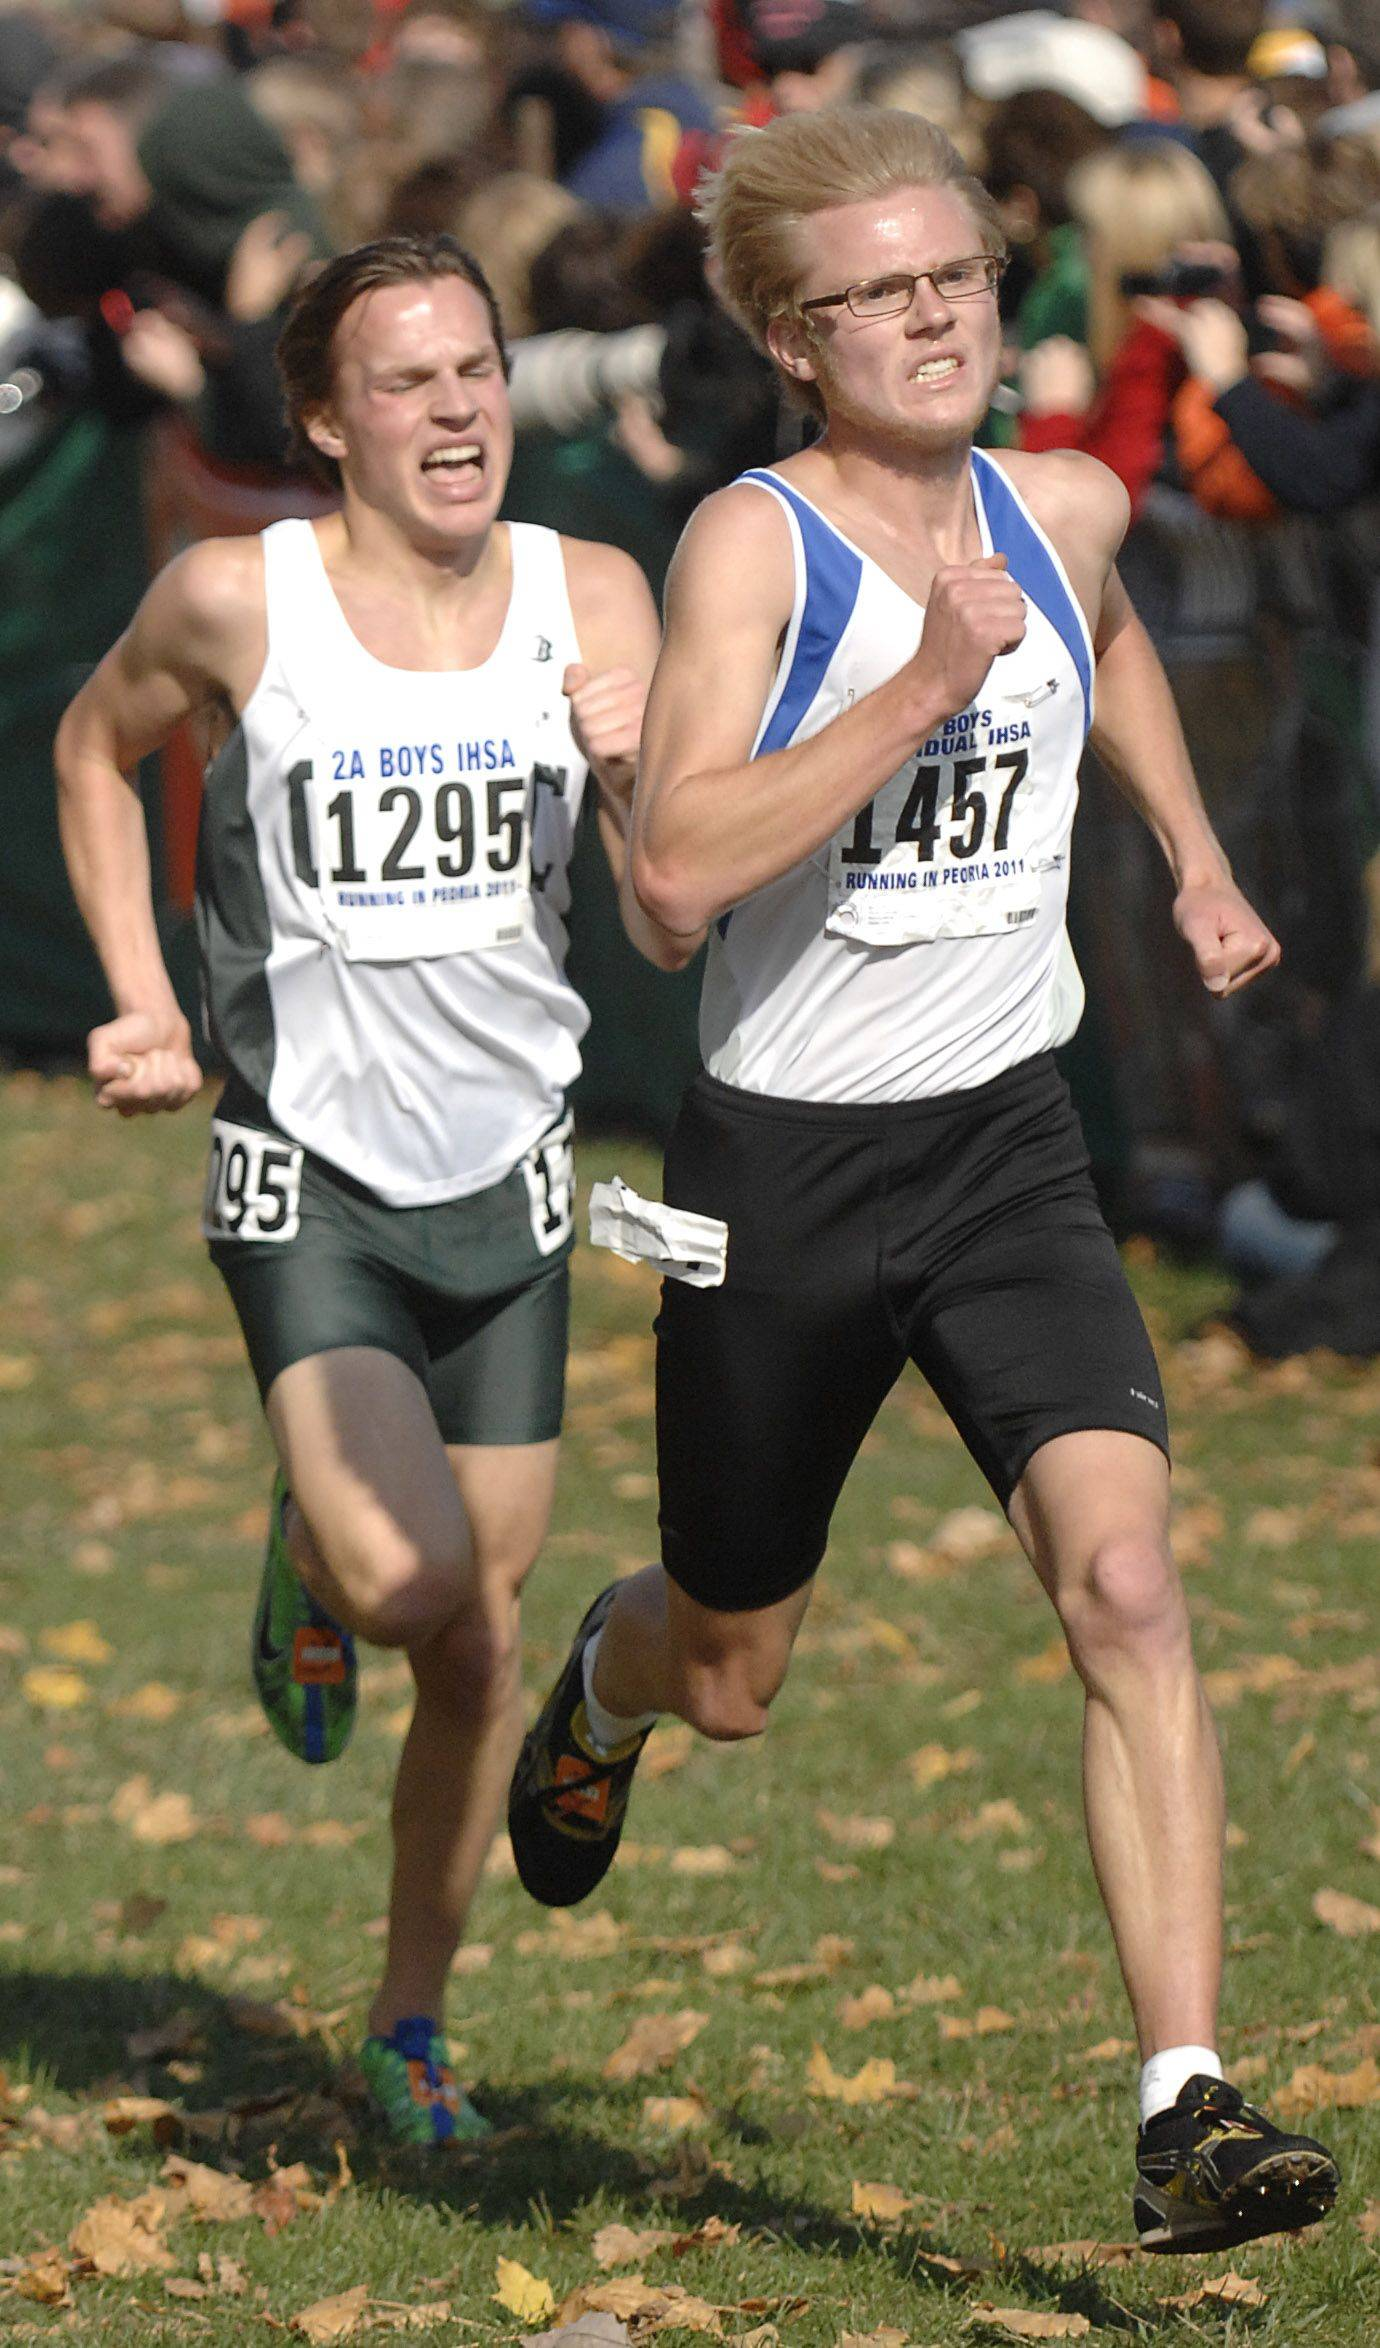 Burlington Central's Clint Kliem edges past Grayslake Central's Will Brewster near the finish line in the 2A state cross country final in Peoria on Saturday, November 5.